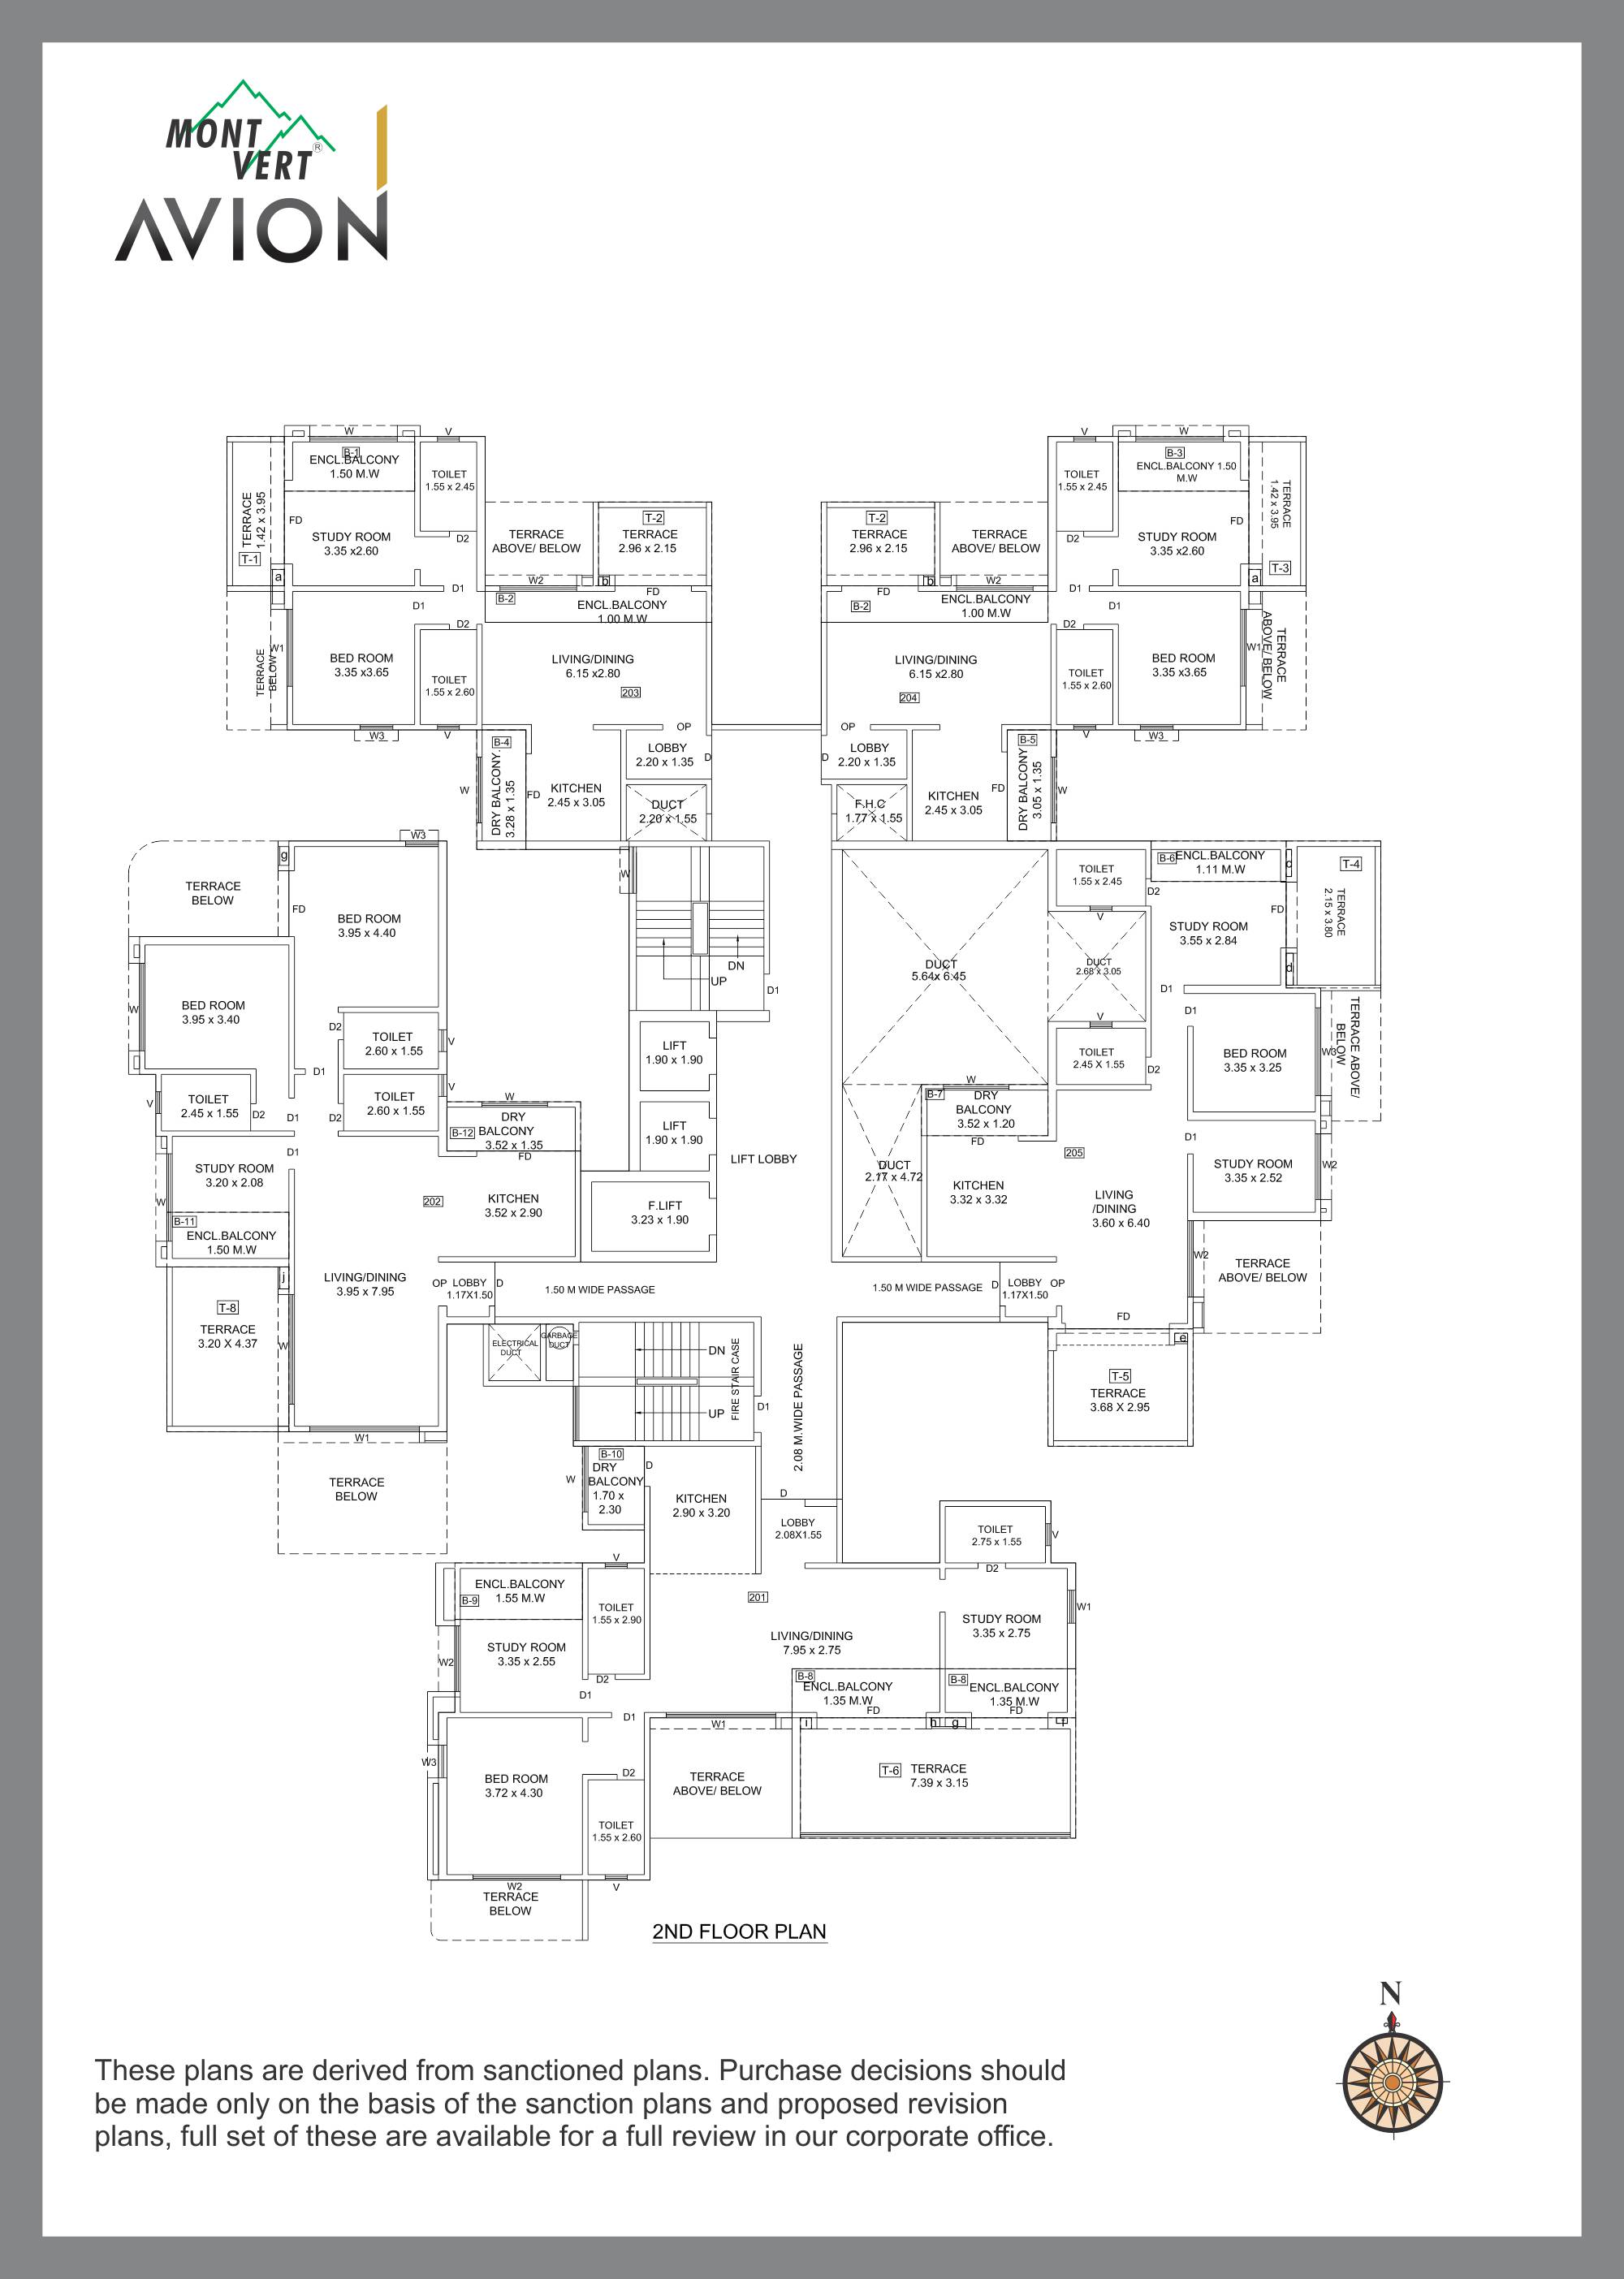 Floor Plans Mont Vert Avion Schematic Typical Even Plan